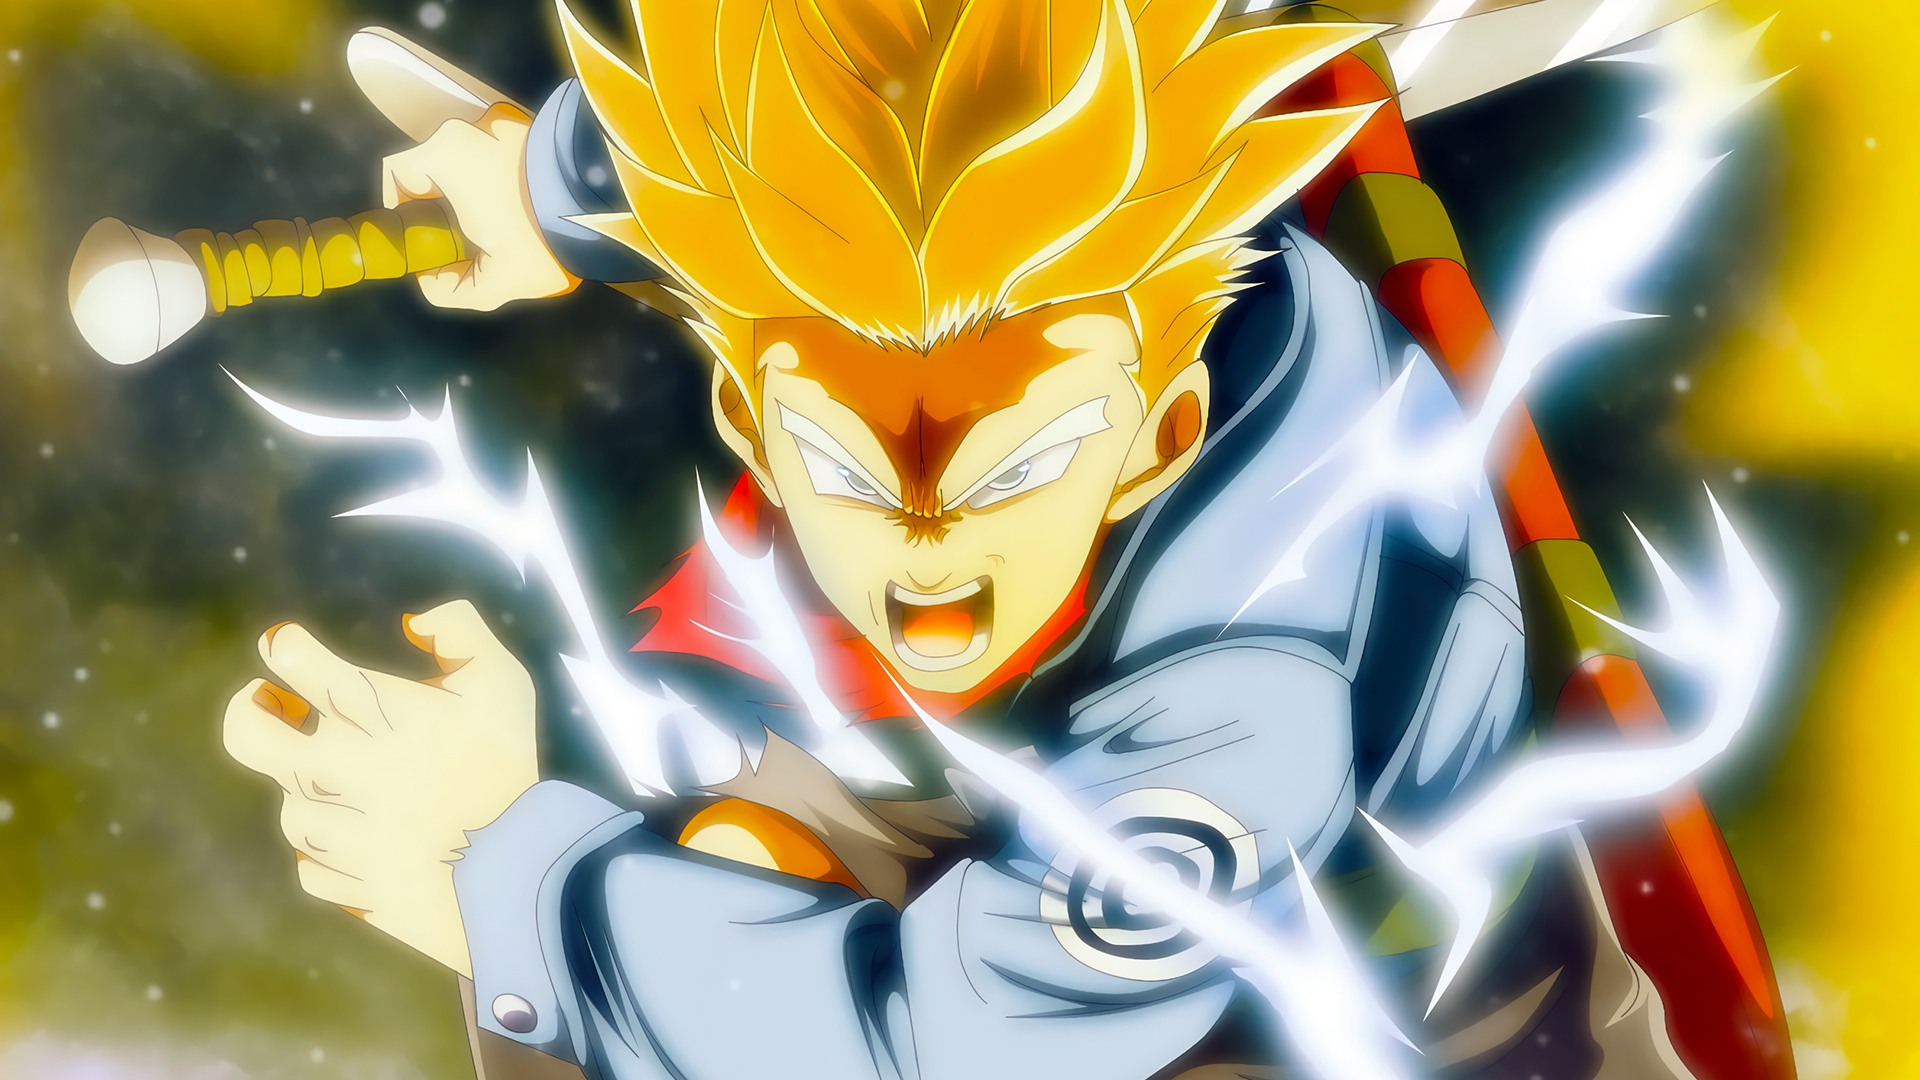 Trunks Wallpaper Hd Posted By Christopher Walker